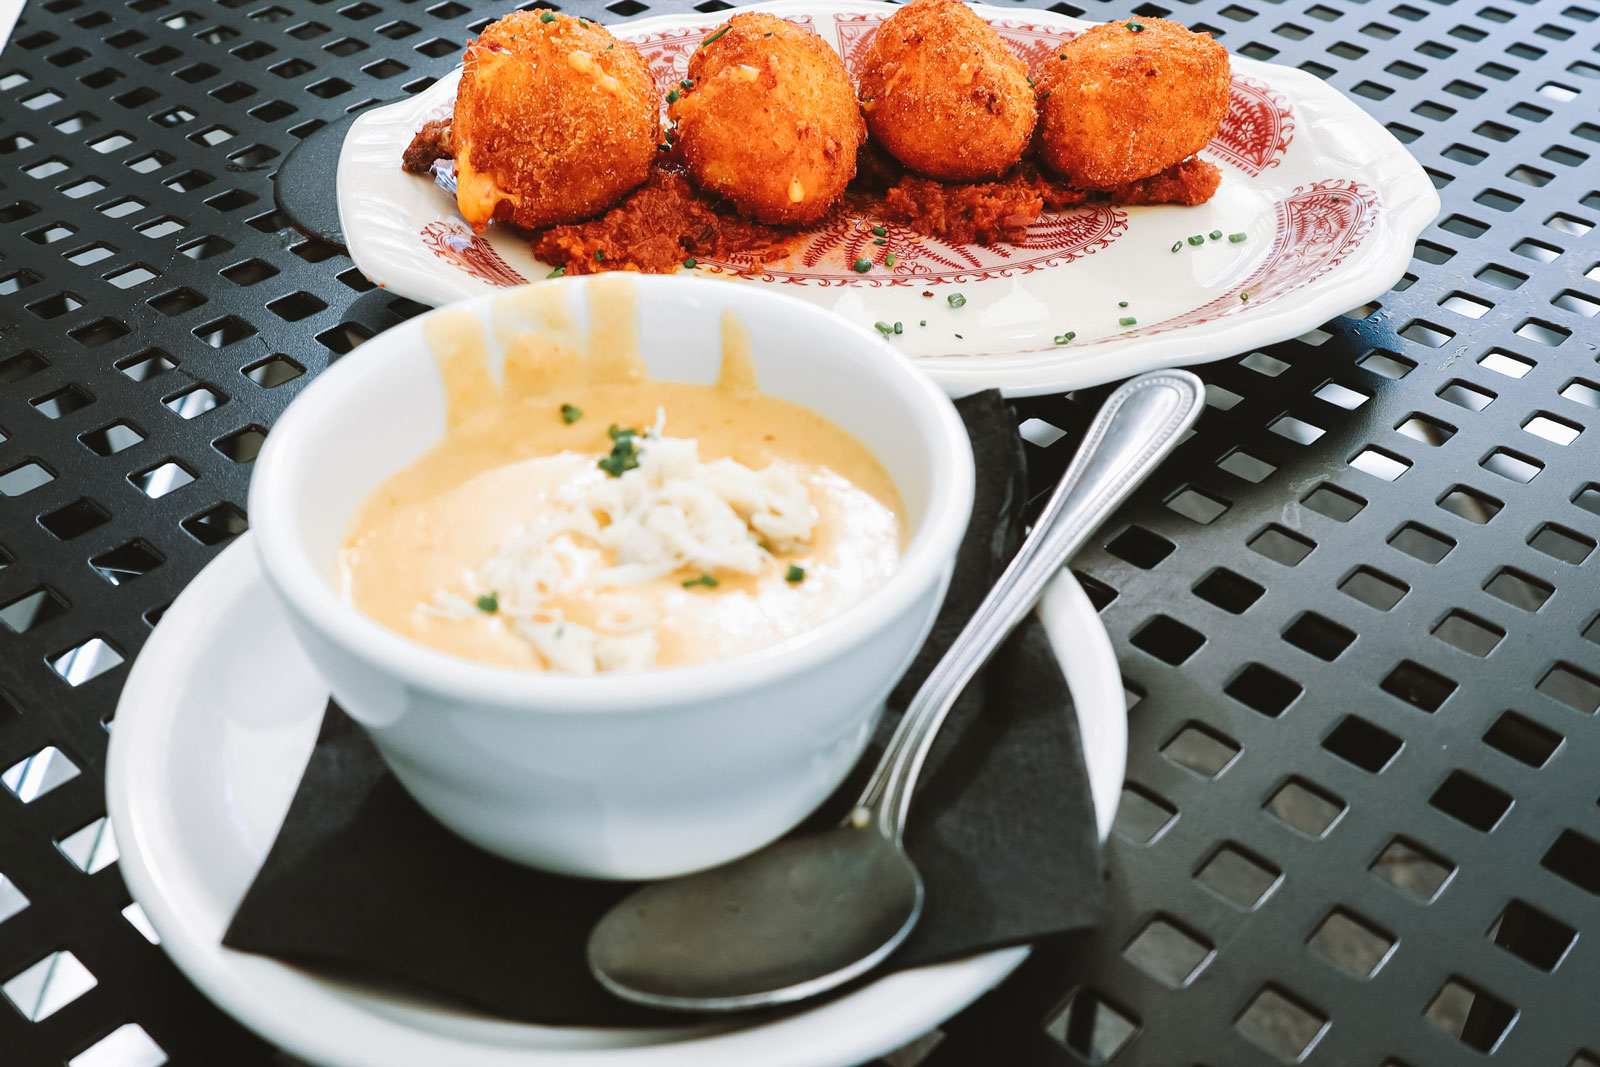 A dish of hushpuppies next to a small, delicate bowl.